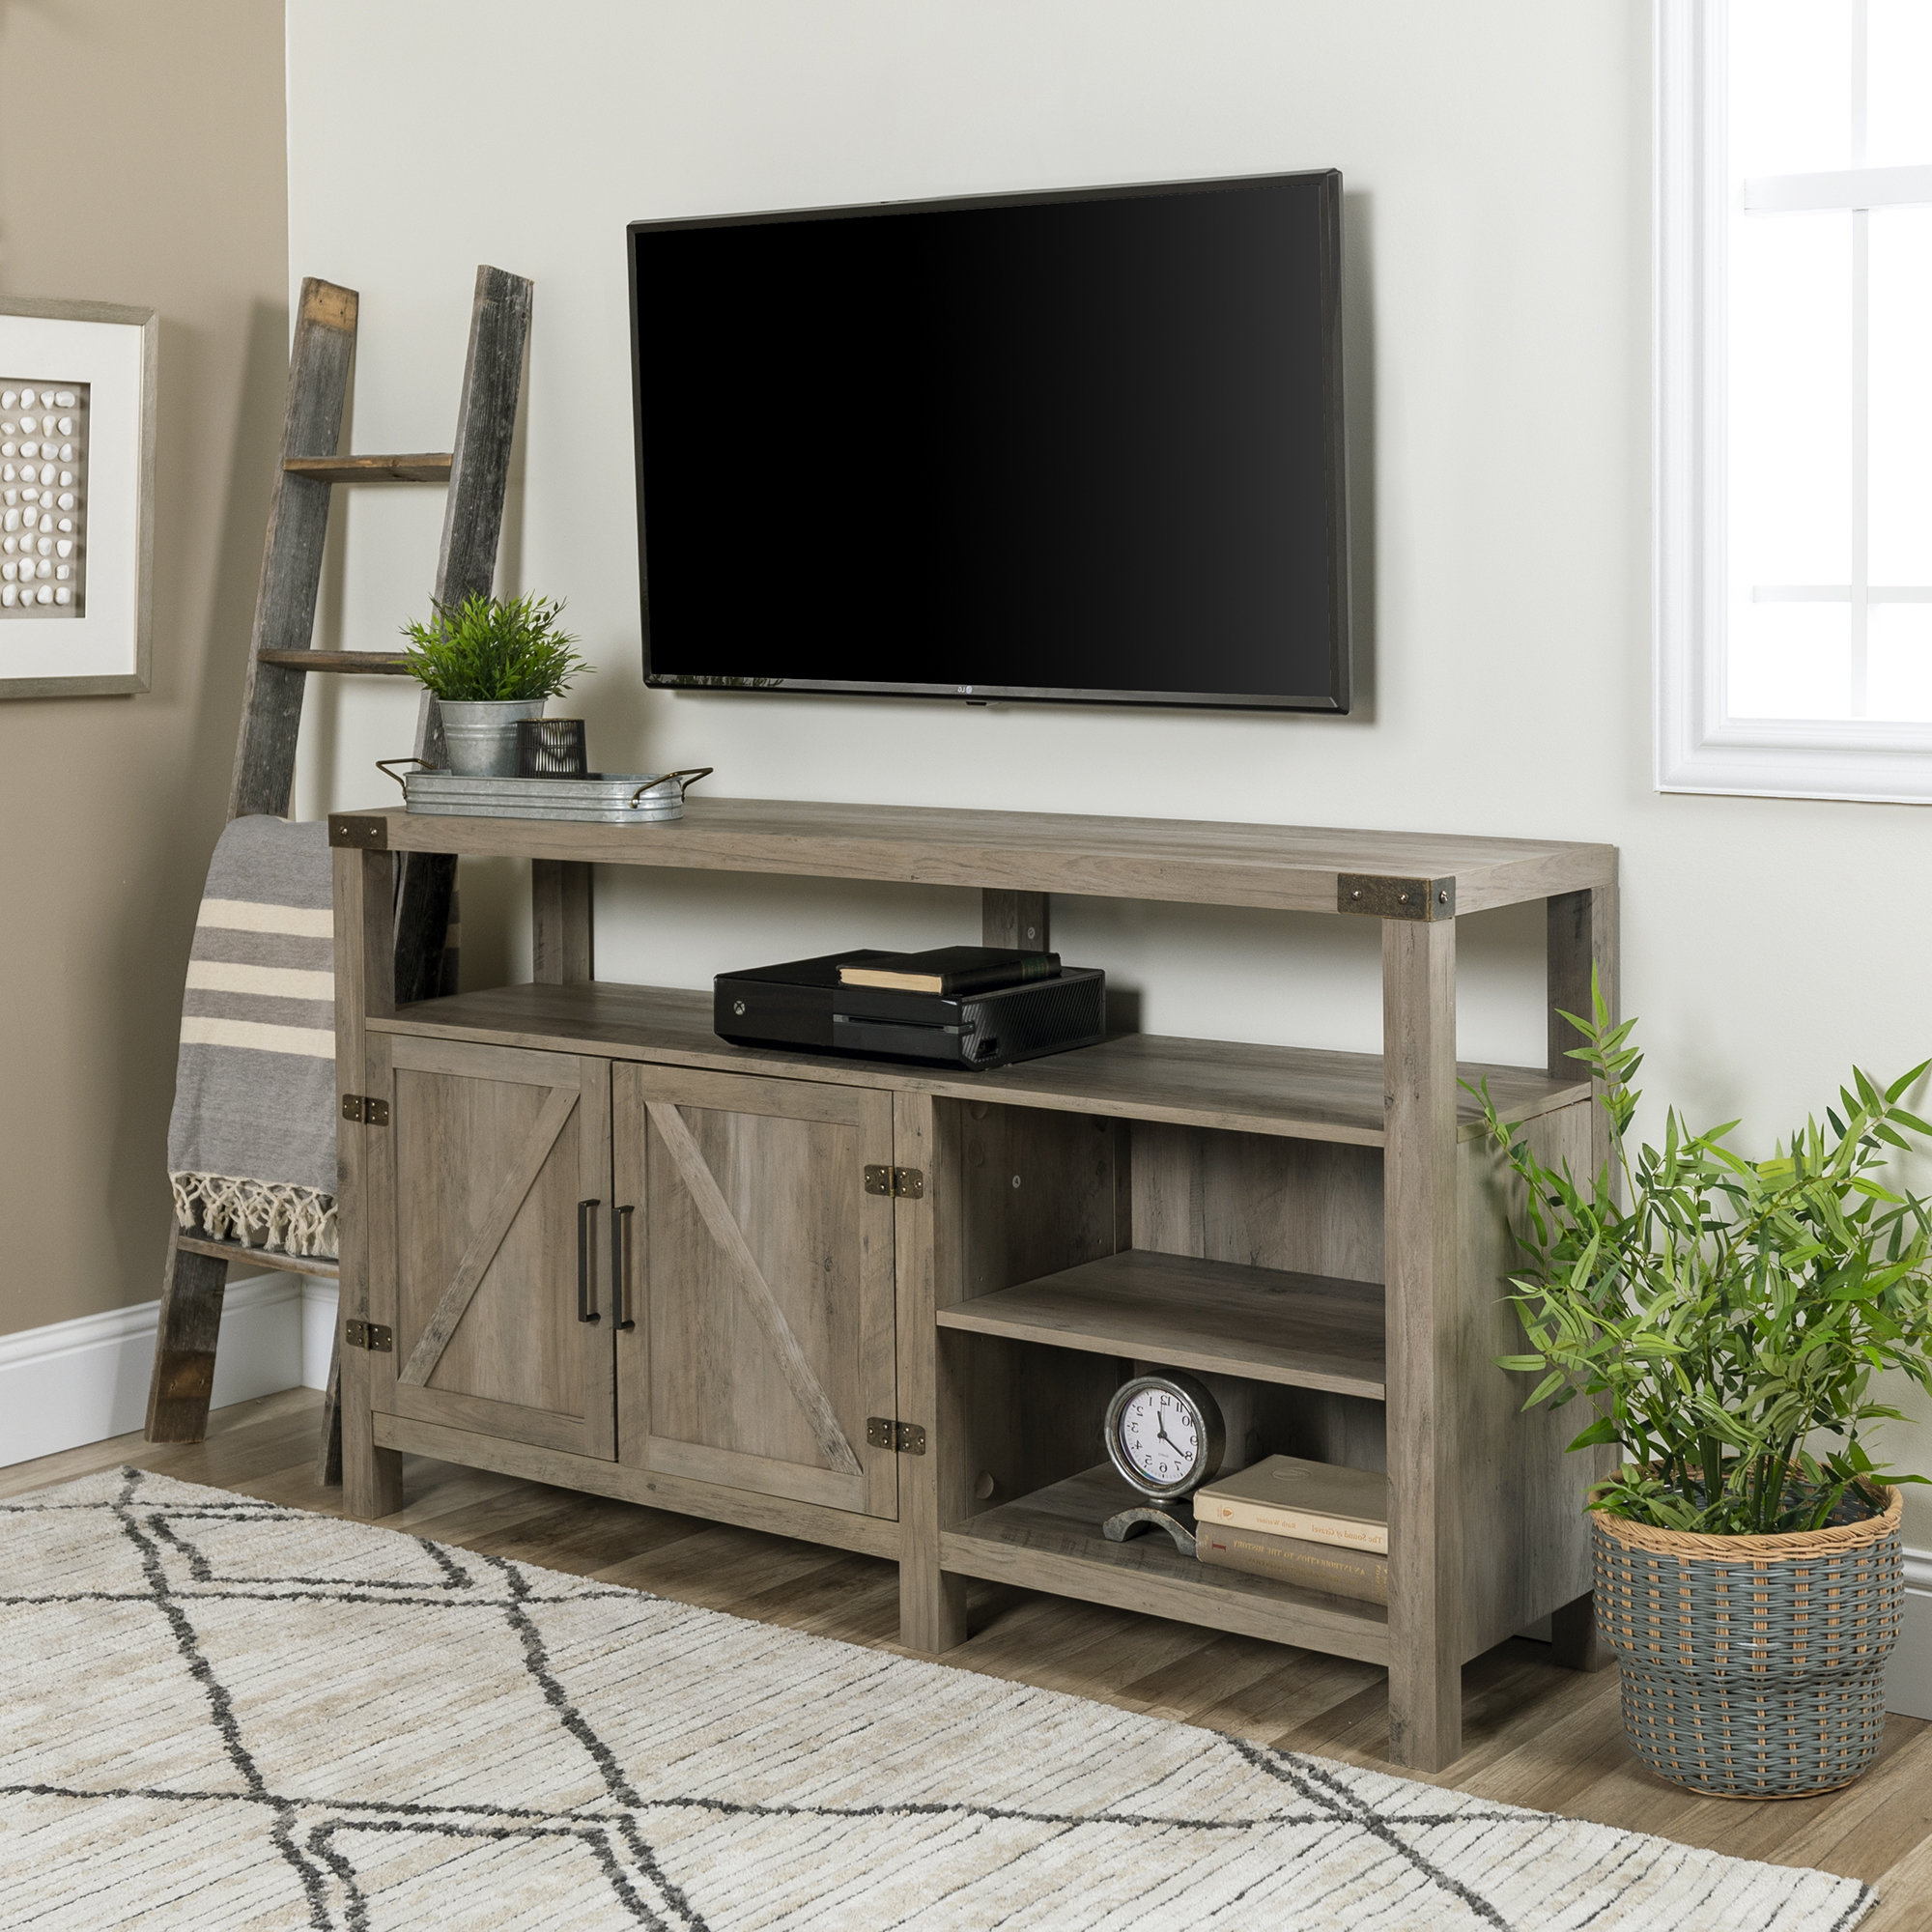 Tall Tv Stands You'll Love | Wayfair Pertaining To Canyon 54 Inch Tv Stands (Gallery 17 of 20)